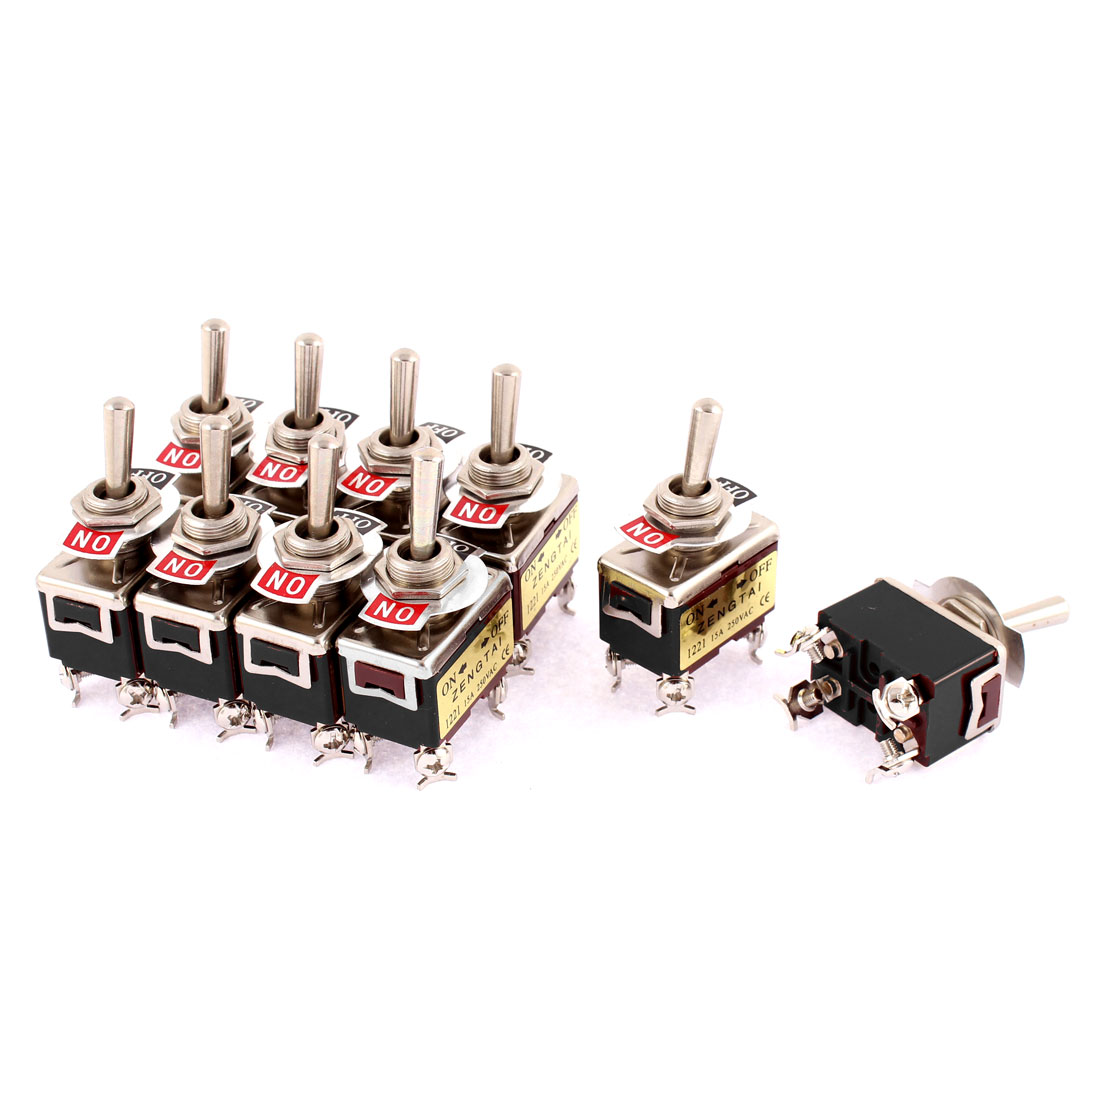 10pcs AC 250V 15A 4 Screw Terminals M12 Thread Panel Mount DPST 2 Position ON/OFF Latching Toggle Switch